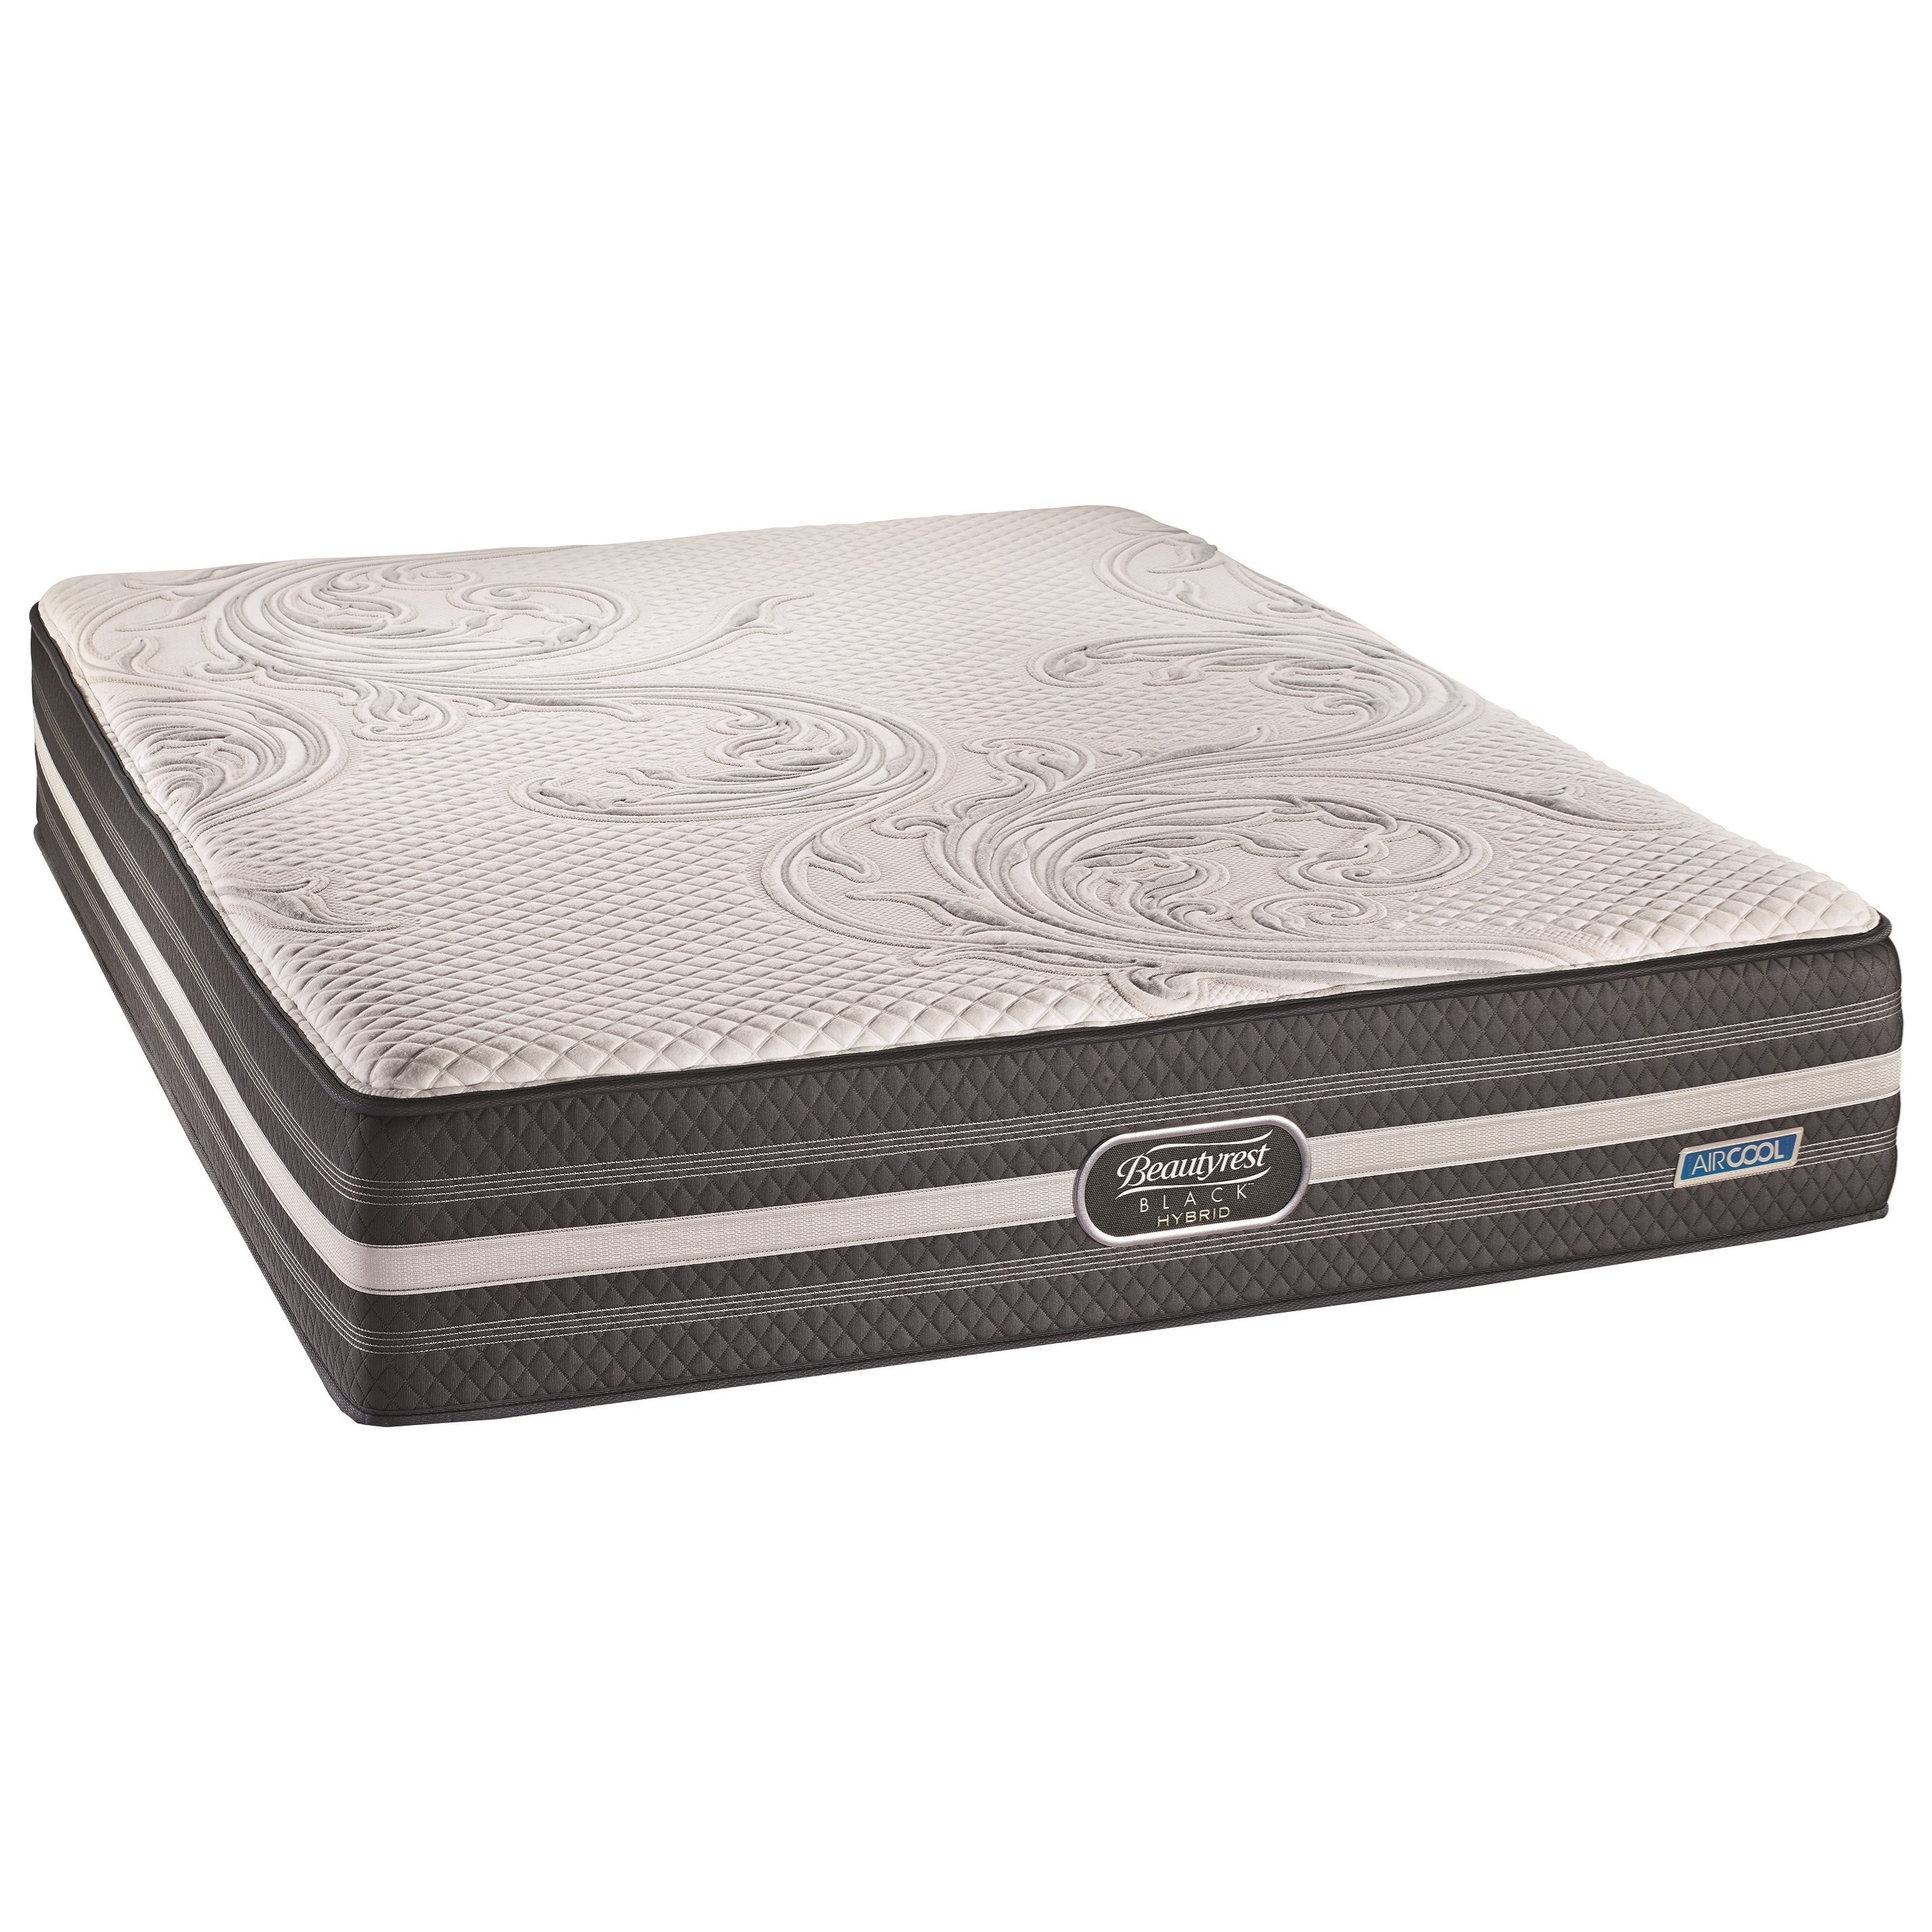 BR Black Hybrid Valentina Lux Firm King Luxury Firm Hybrid Mattress by Beautyrest Canada at Jordan's Home Furnishings